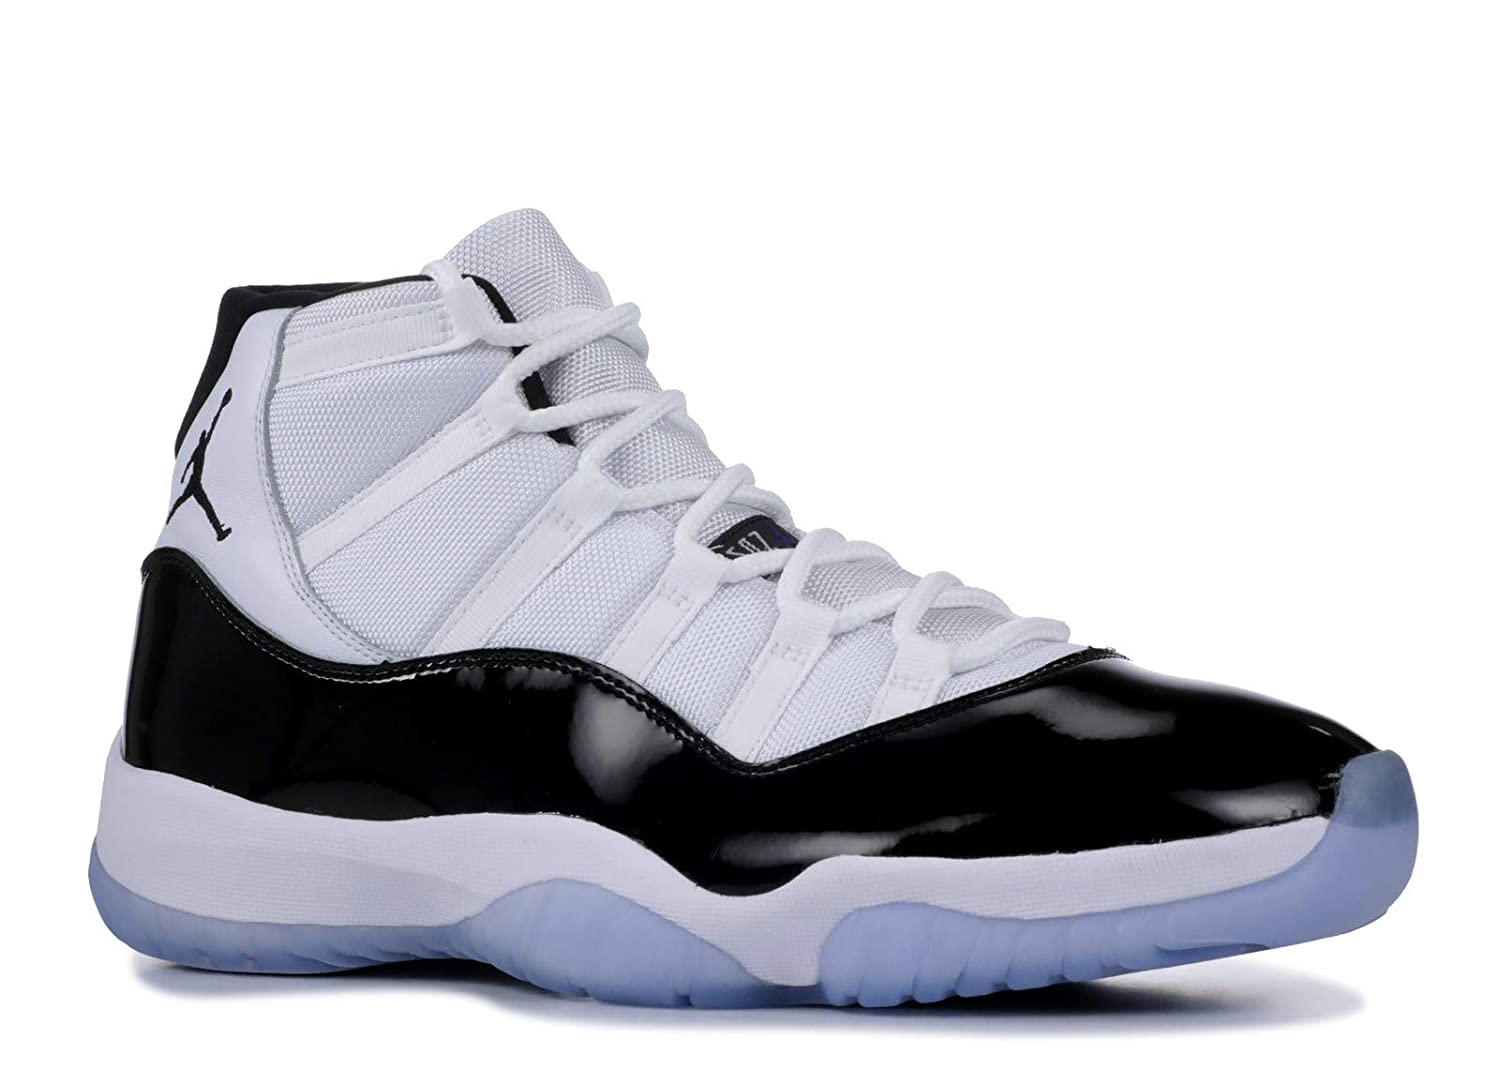 967d1e53055 Amazon.com | Air Jordan 11 Retro Concord 2018 Release - 378037-100 - Size 4  | Basketball